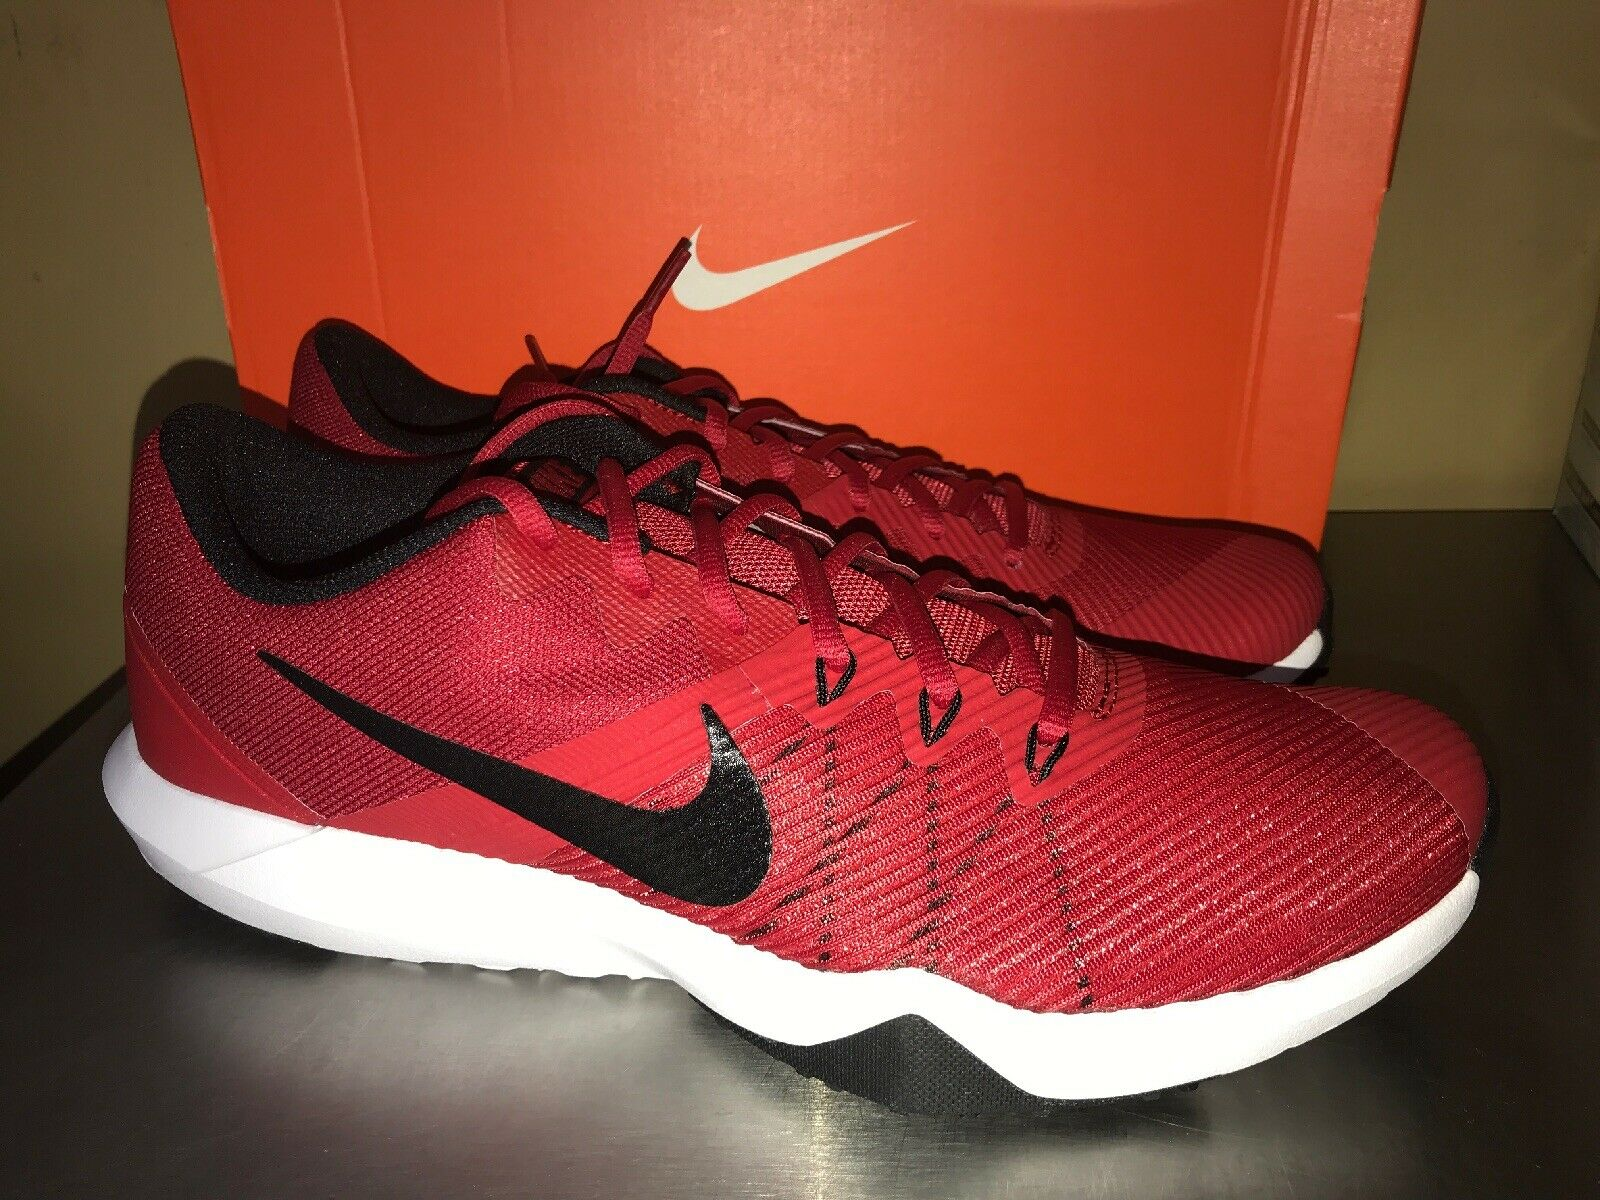 Men's Nike Retaliation TR shoes running training sneakers Red Black Size 11 New